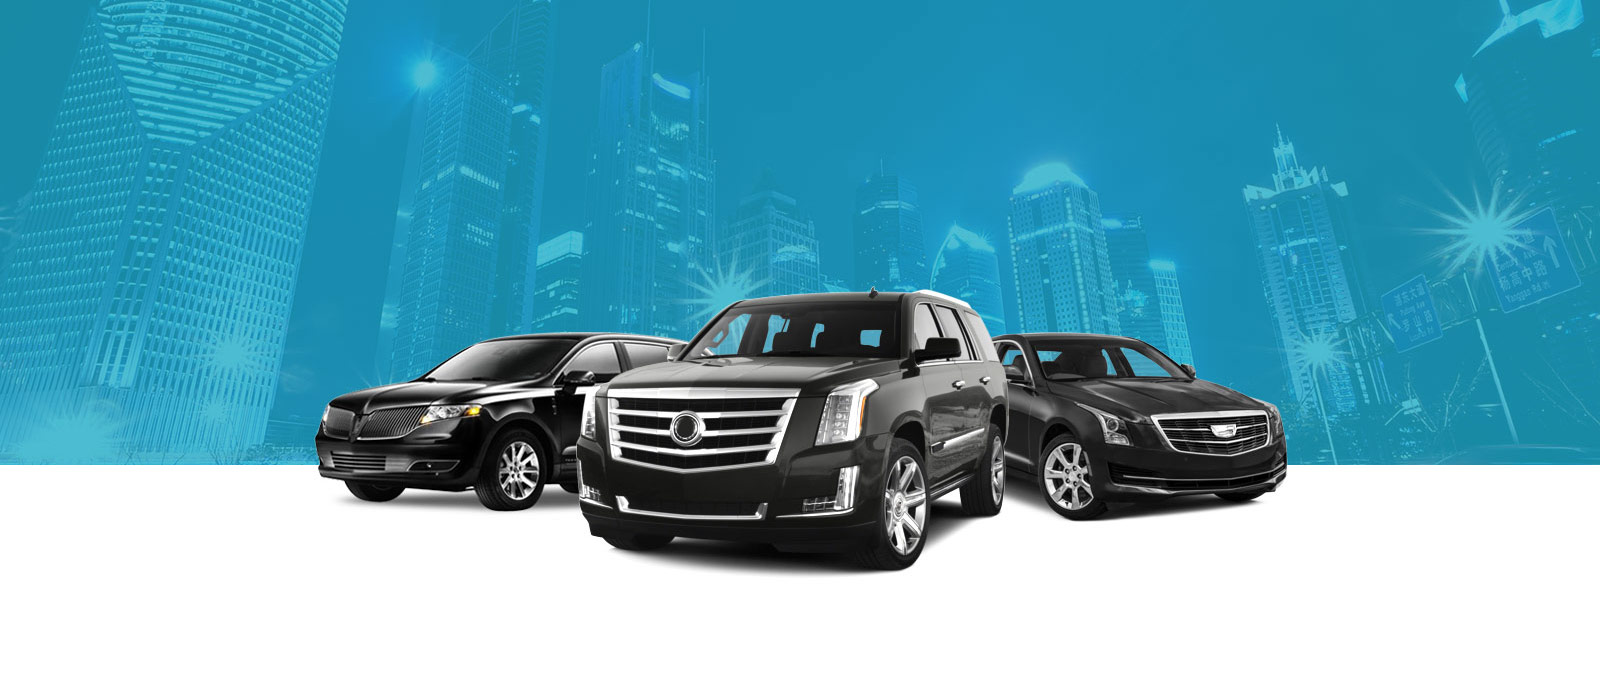 SUV Limo Chicago, Stretch SUV Limousine Service, Fleet, All American Limousine, Cadillac Escalade, Book Limo